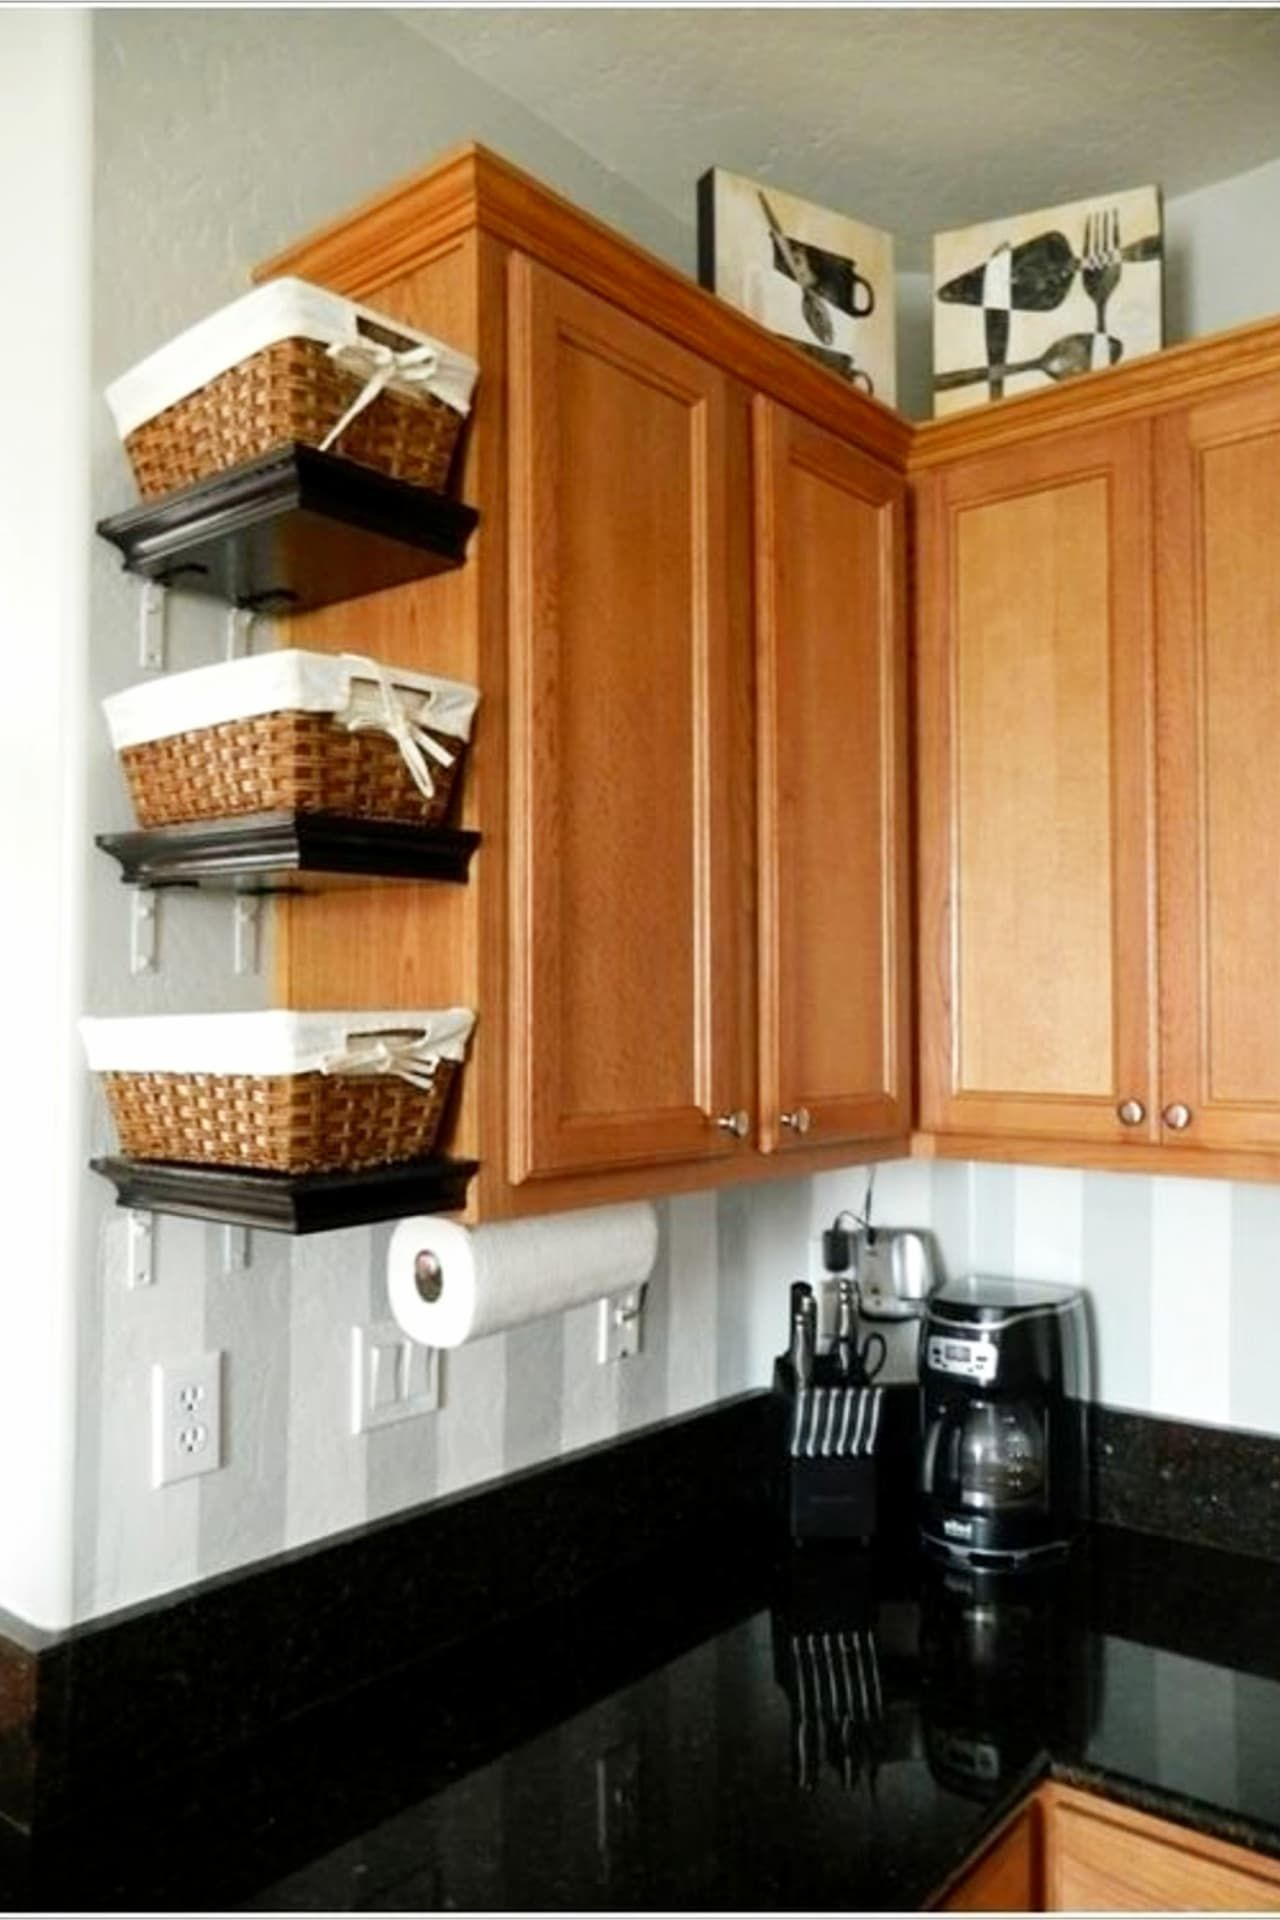 declutter your kitchen diy shelves to organize a country farmhouse kitchen on a budget diy on kitchen organization diy id=40380